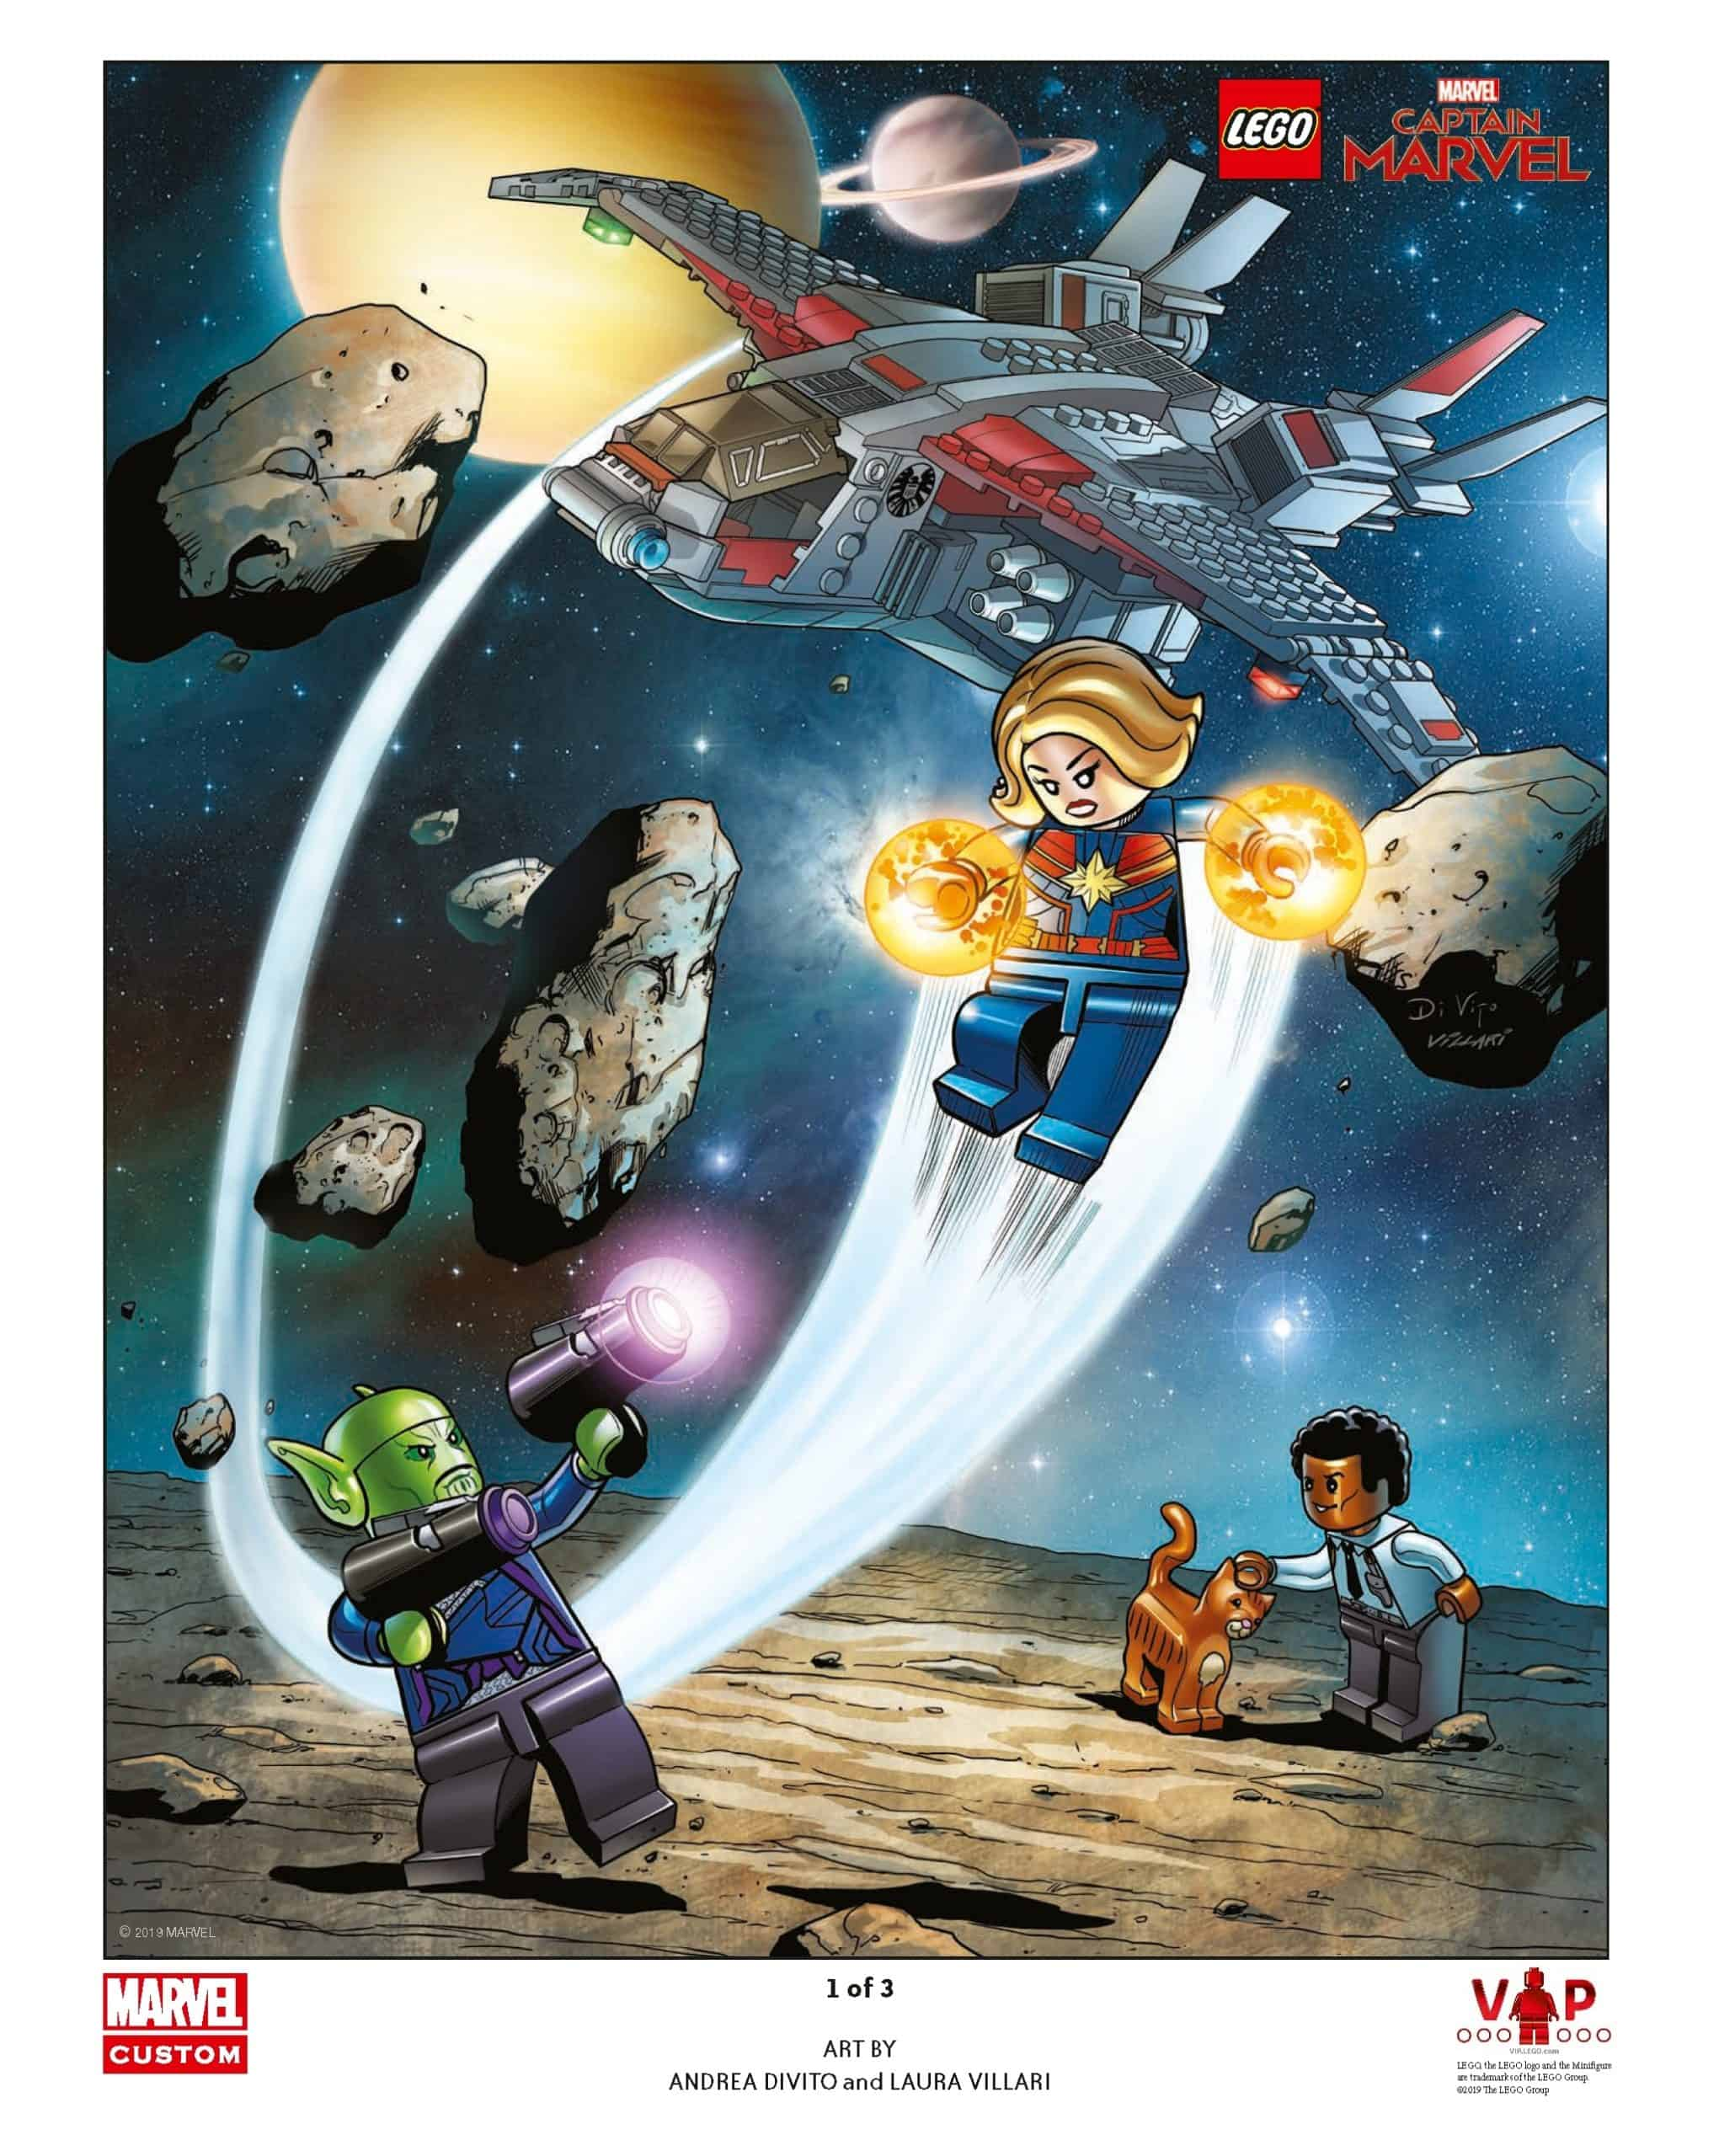 lego captain marvel poster 1 van 3 5005877 scaled